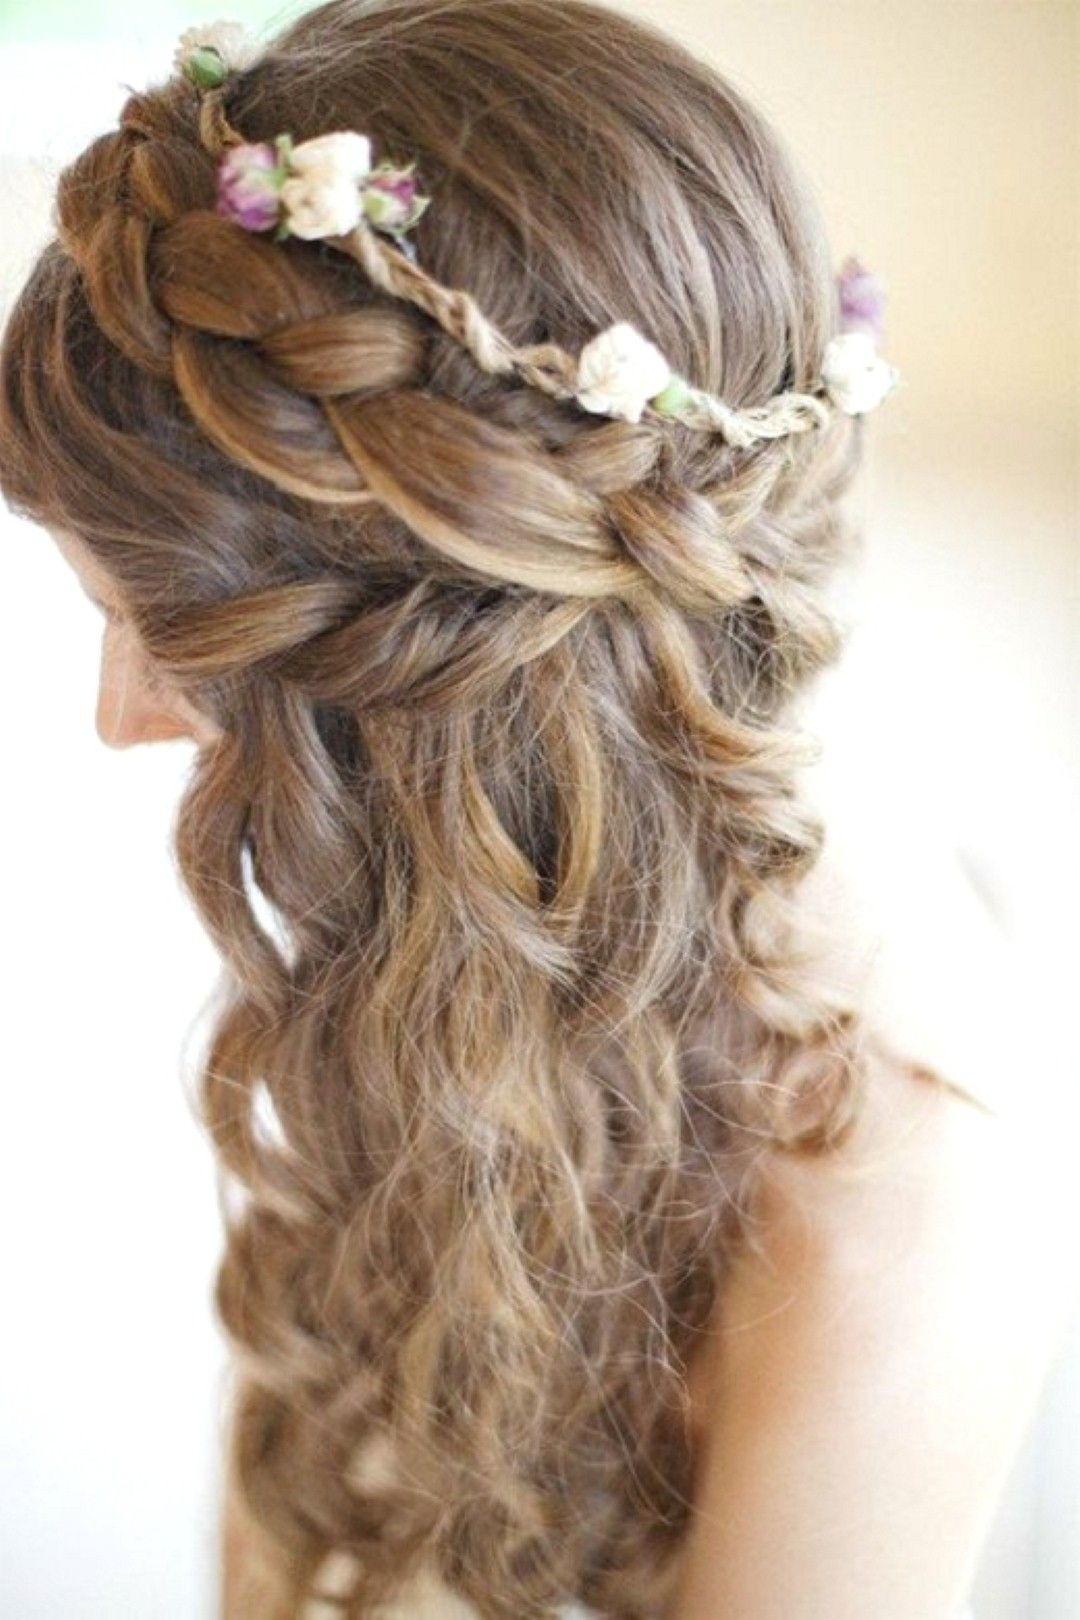 30 Prettiest Homecoming Hairstyles Ideas - MagMent